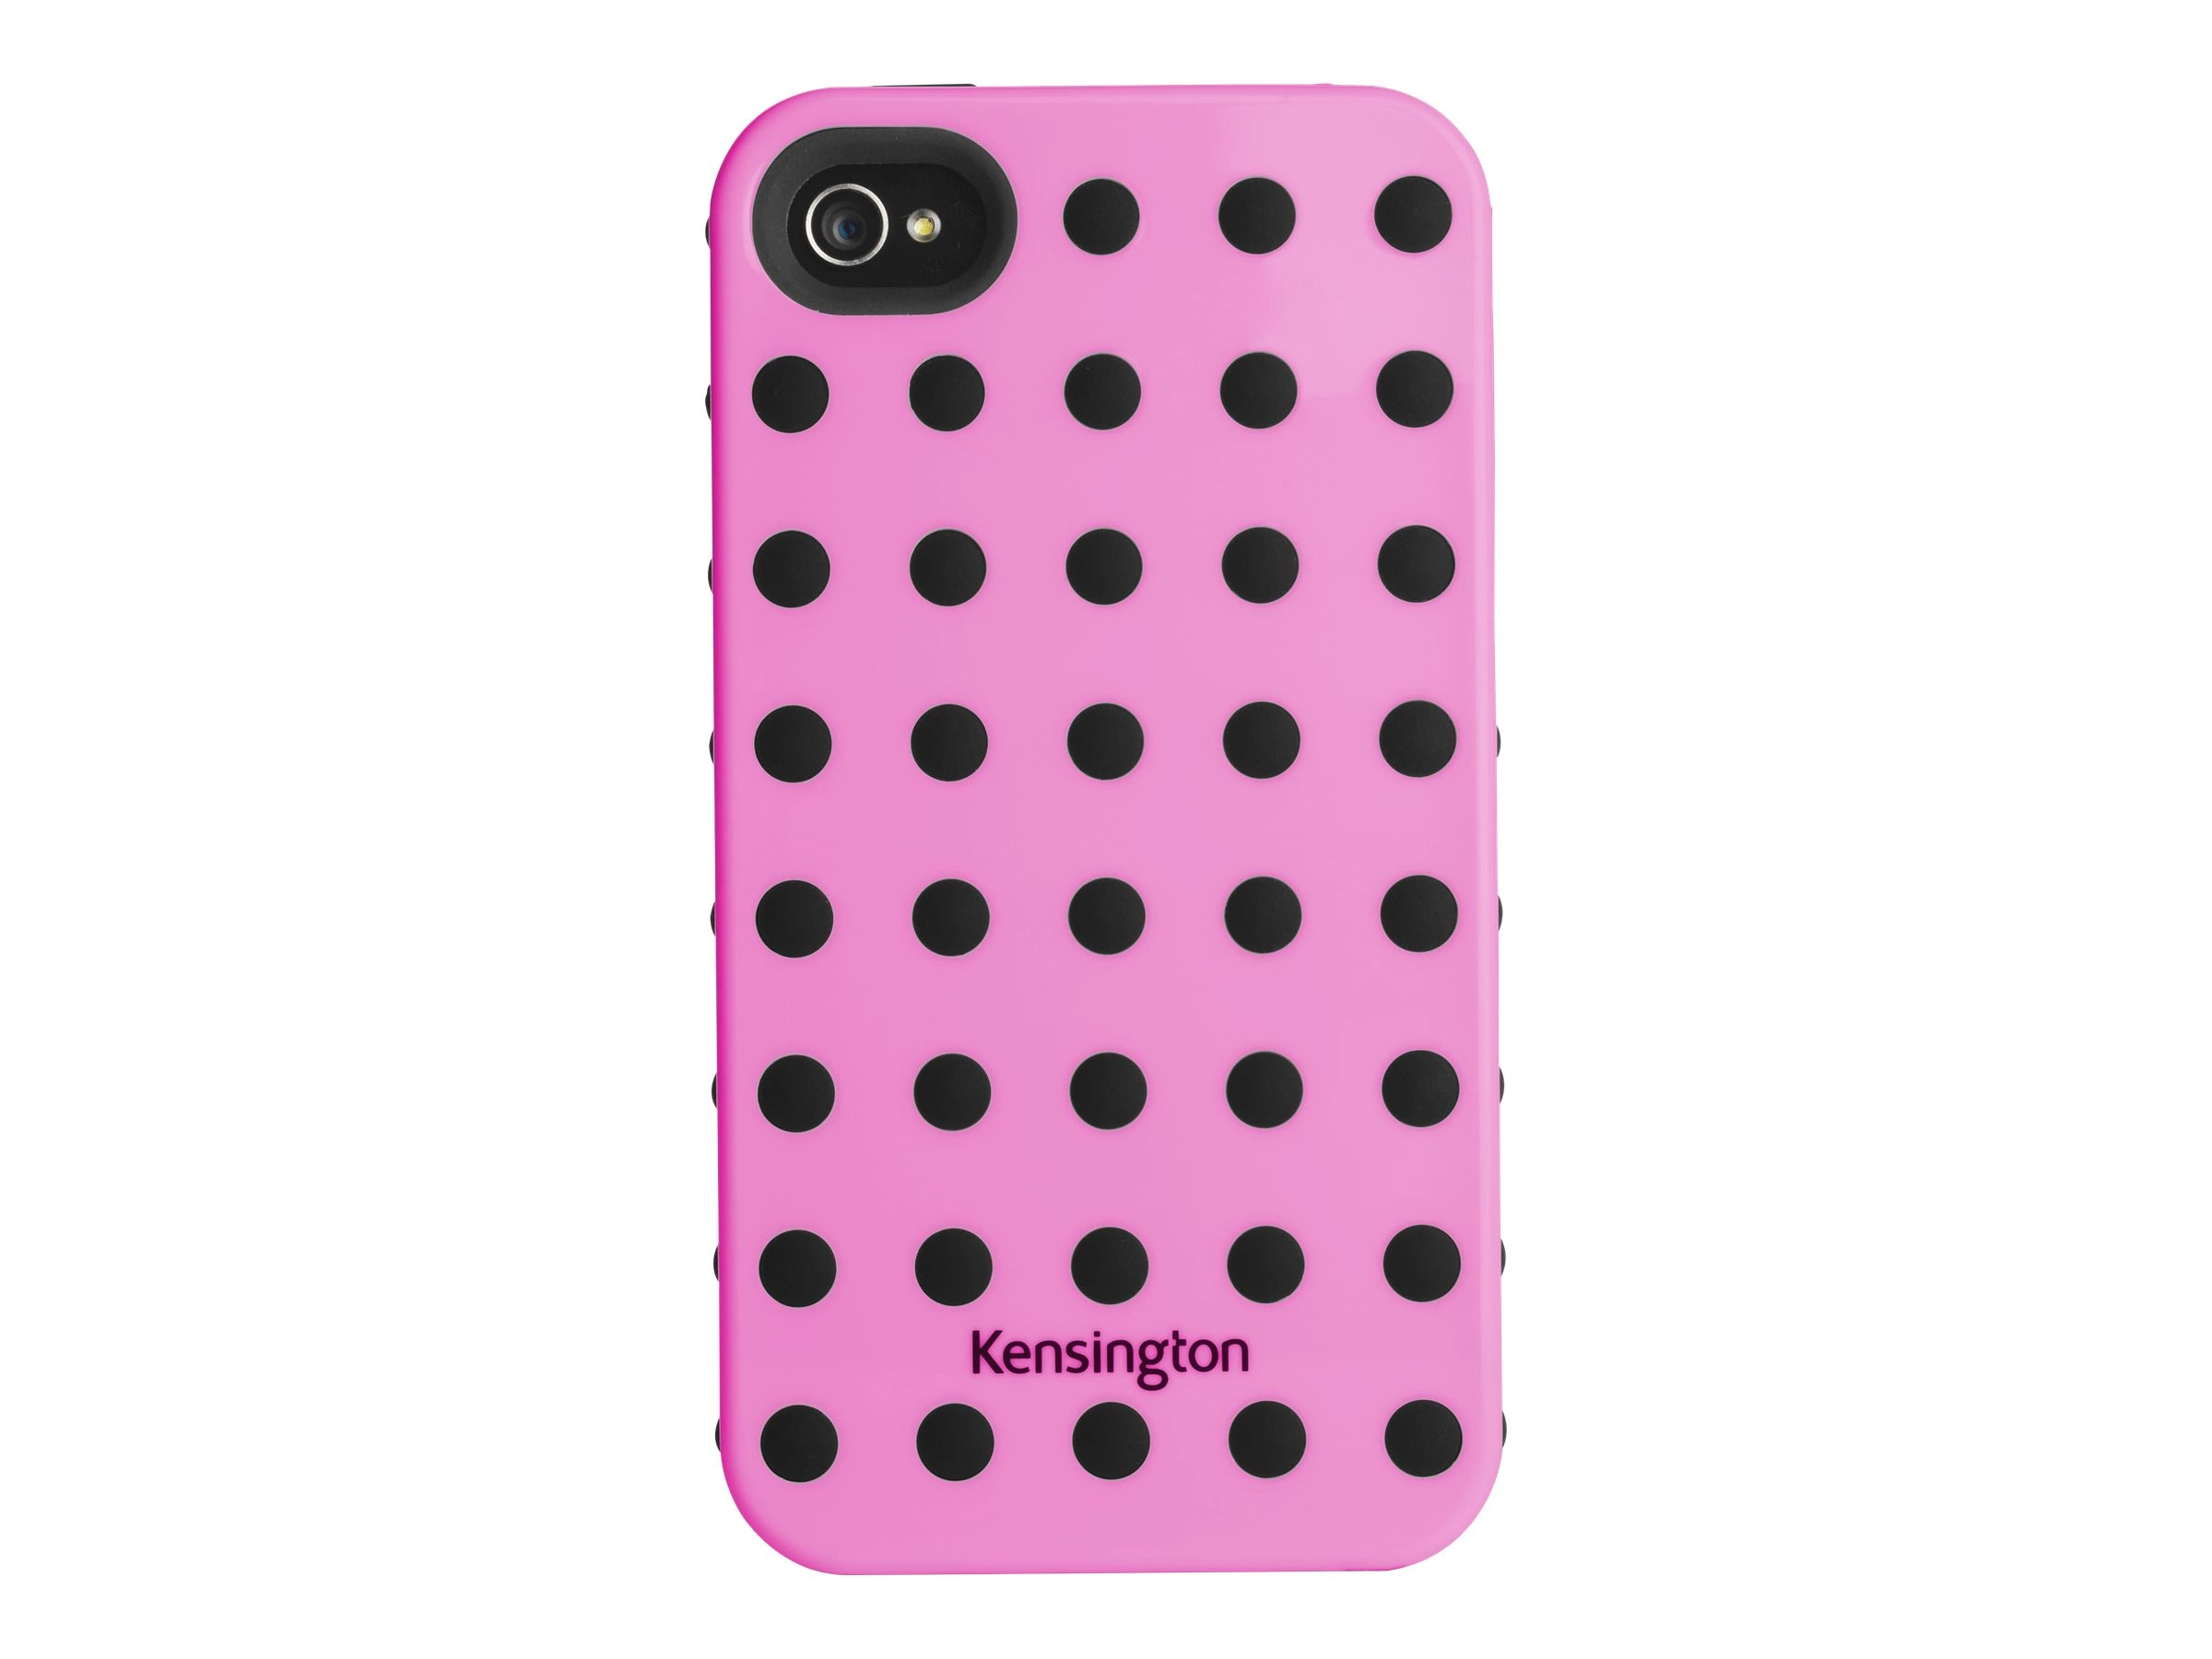 Kensington Combination Case for iPhone 4 & 4S, Pink